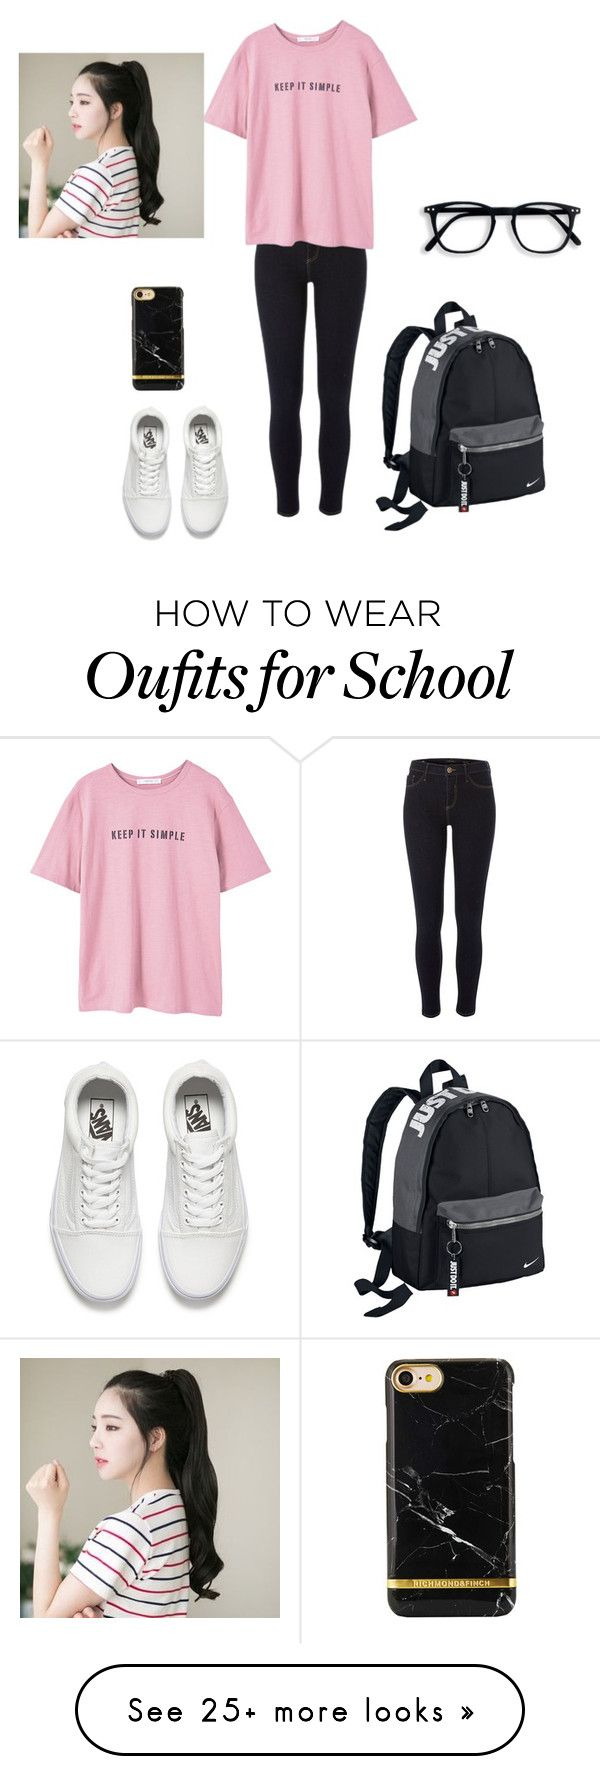 School outfit. by isabella-pohatu on Polyvore featuring River Island, MANGO, NIKE, Vans and GABALNARA